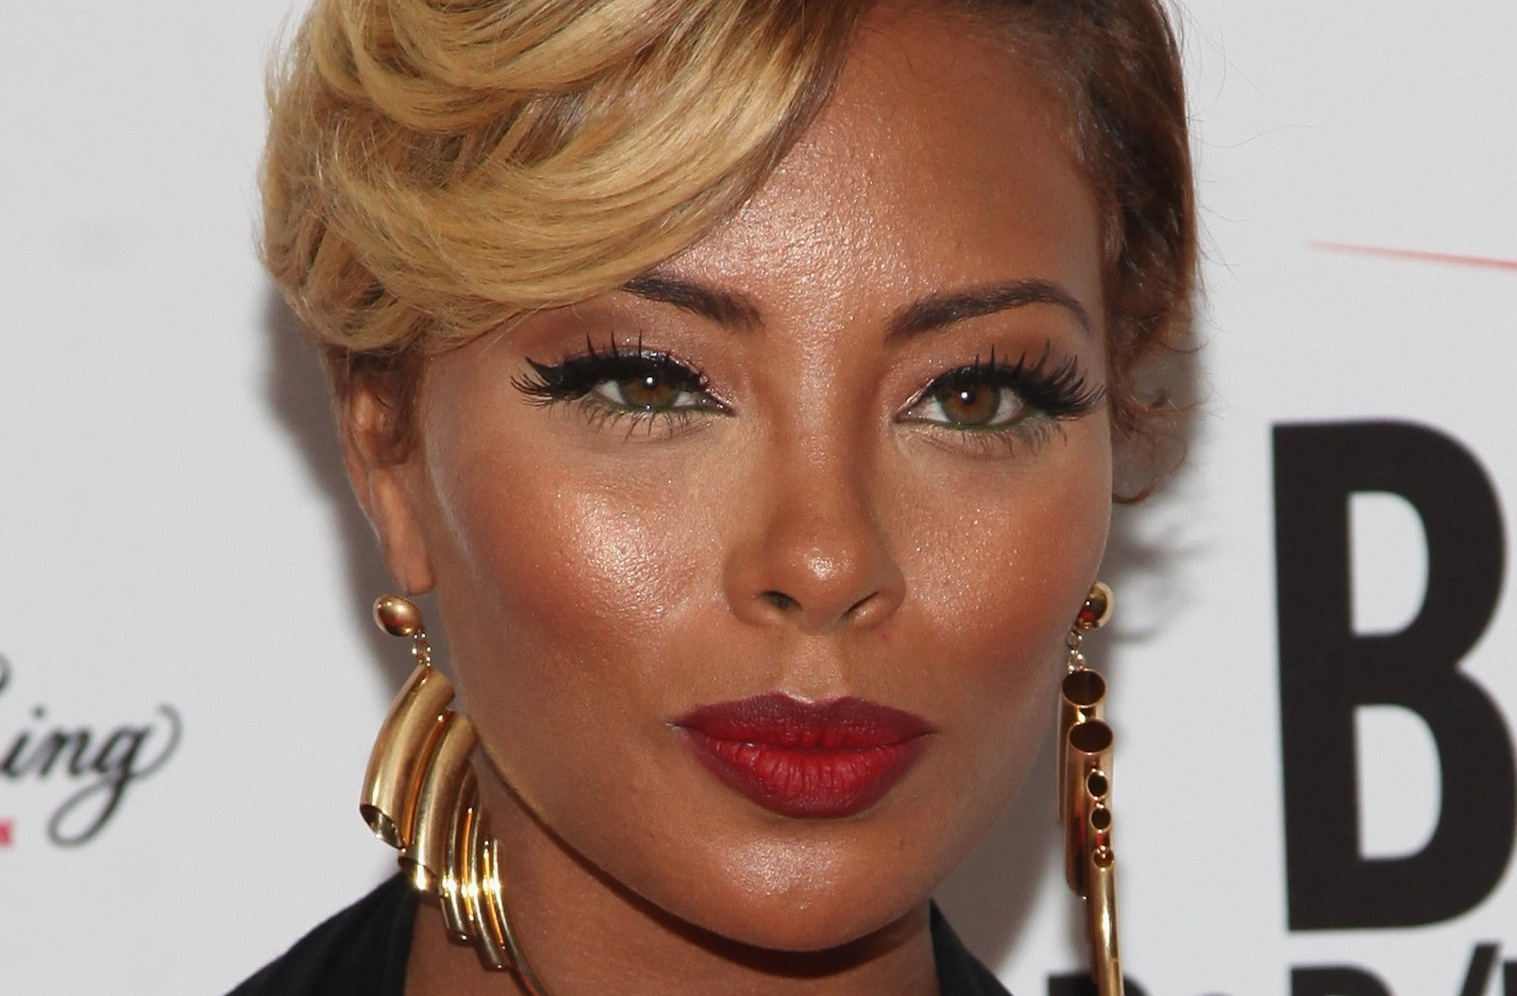 Eva Marcille Shares An Emotional Video Featuring Will Smith That Leaves Fans In Tears